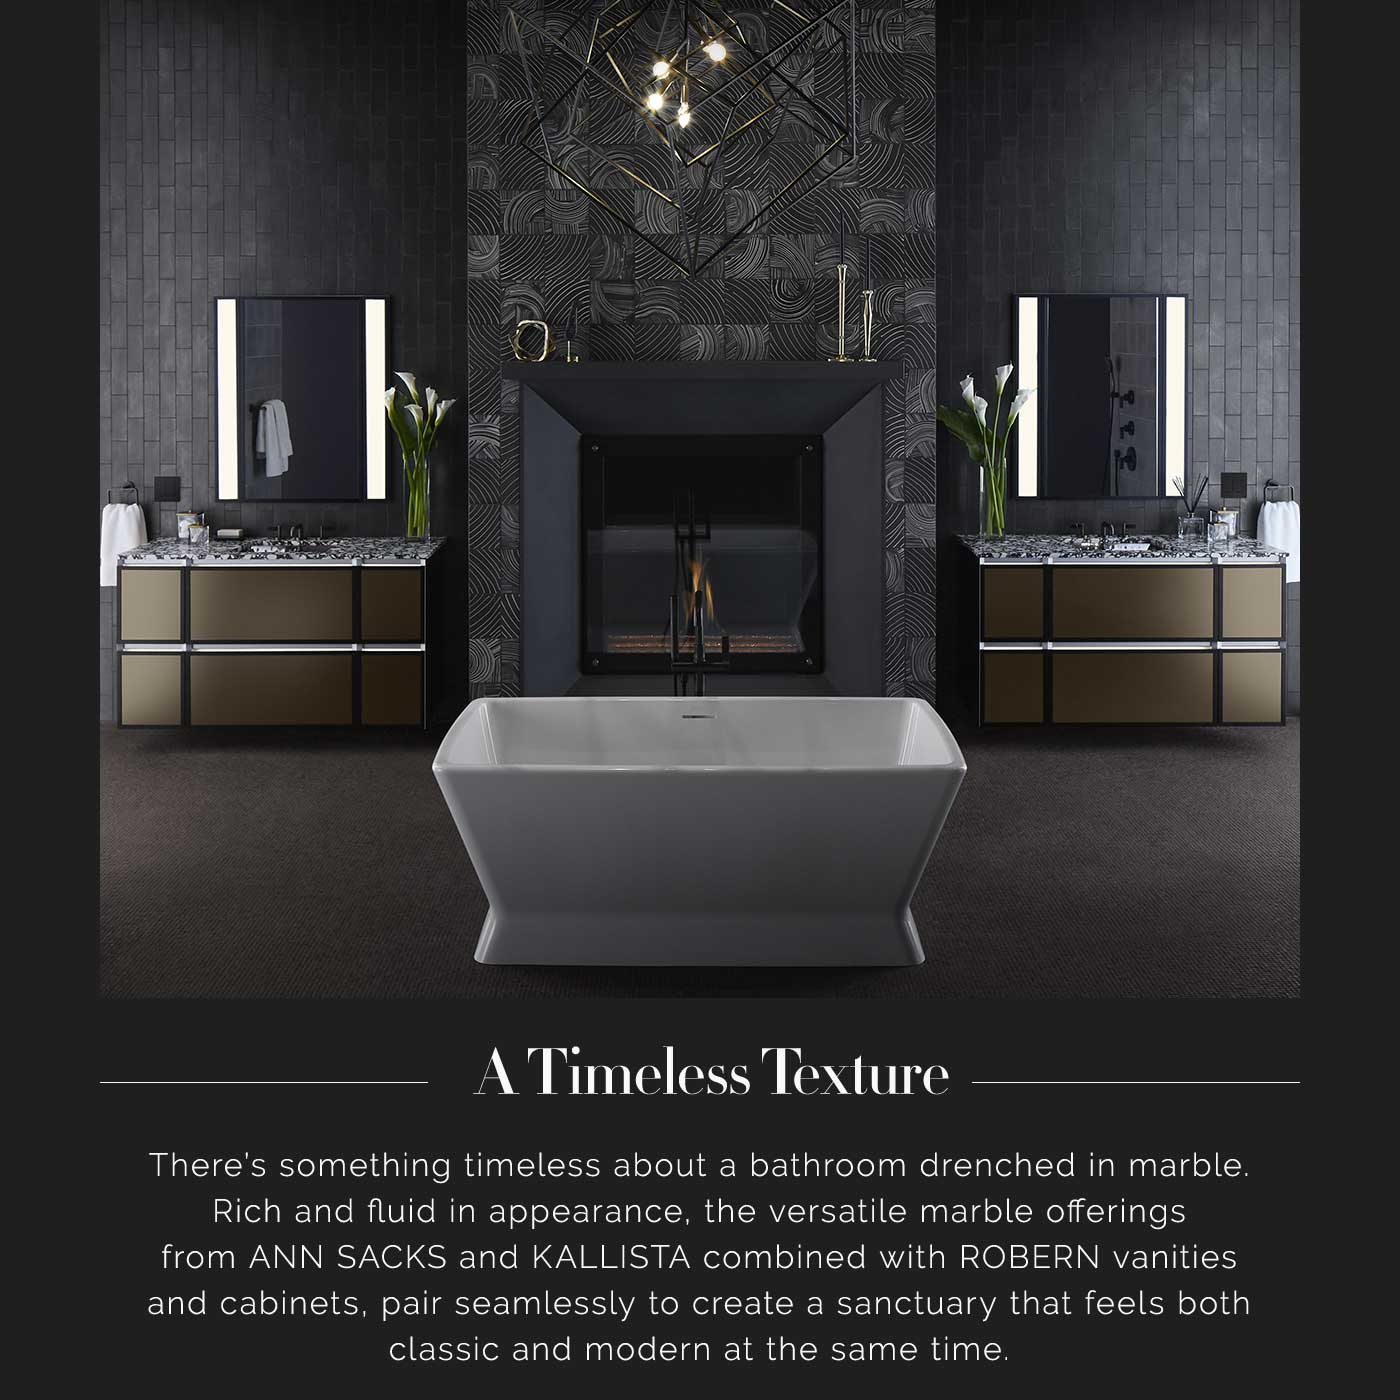 A Timeless Texture | There's something timeless about a bathroom drenched in marble. Rich and fluid in appearance, the versatile marble offerings from ANN SACKS and KALLISTA combined with ROBERN vanities and cabinets, pair seamlessly to create a sanctuary that feels both classic and modern at the same time.